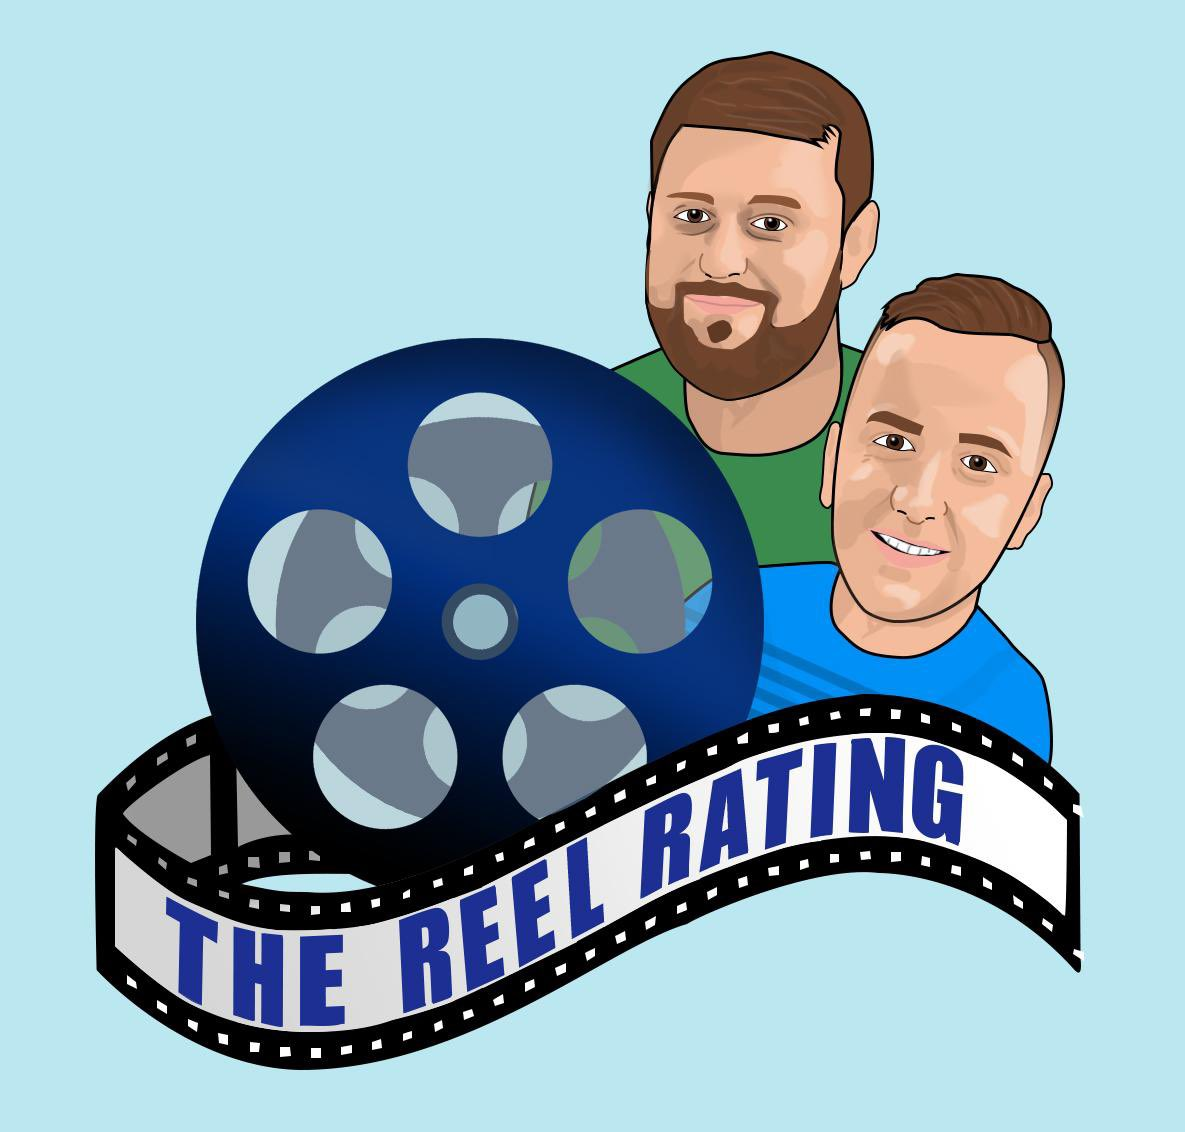 Podcast coming soon...  #thereelrating #comingsoon #podcast #podcasts #podcasting #podcaster #podcastlife #podcasters #podcastshow #applepodcasts #newpodcast #podcastaddict #applepodcast #podcastinglife #spotifypodcast #googlepodcasts #itunespodcast #podcastnetwork #podcastjunkie https://t.co/DnVPX89Tav